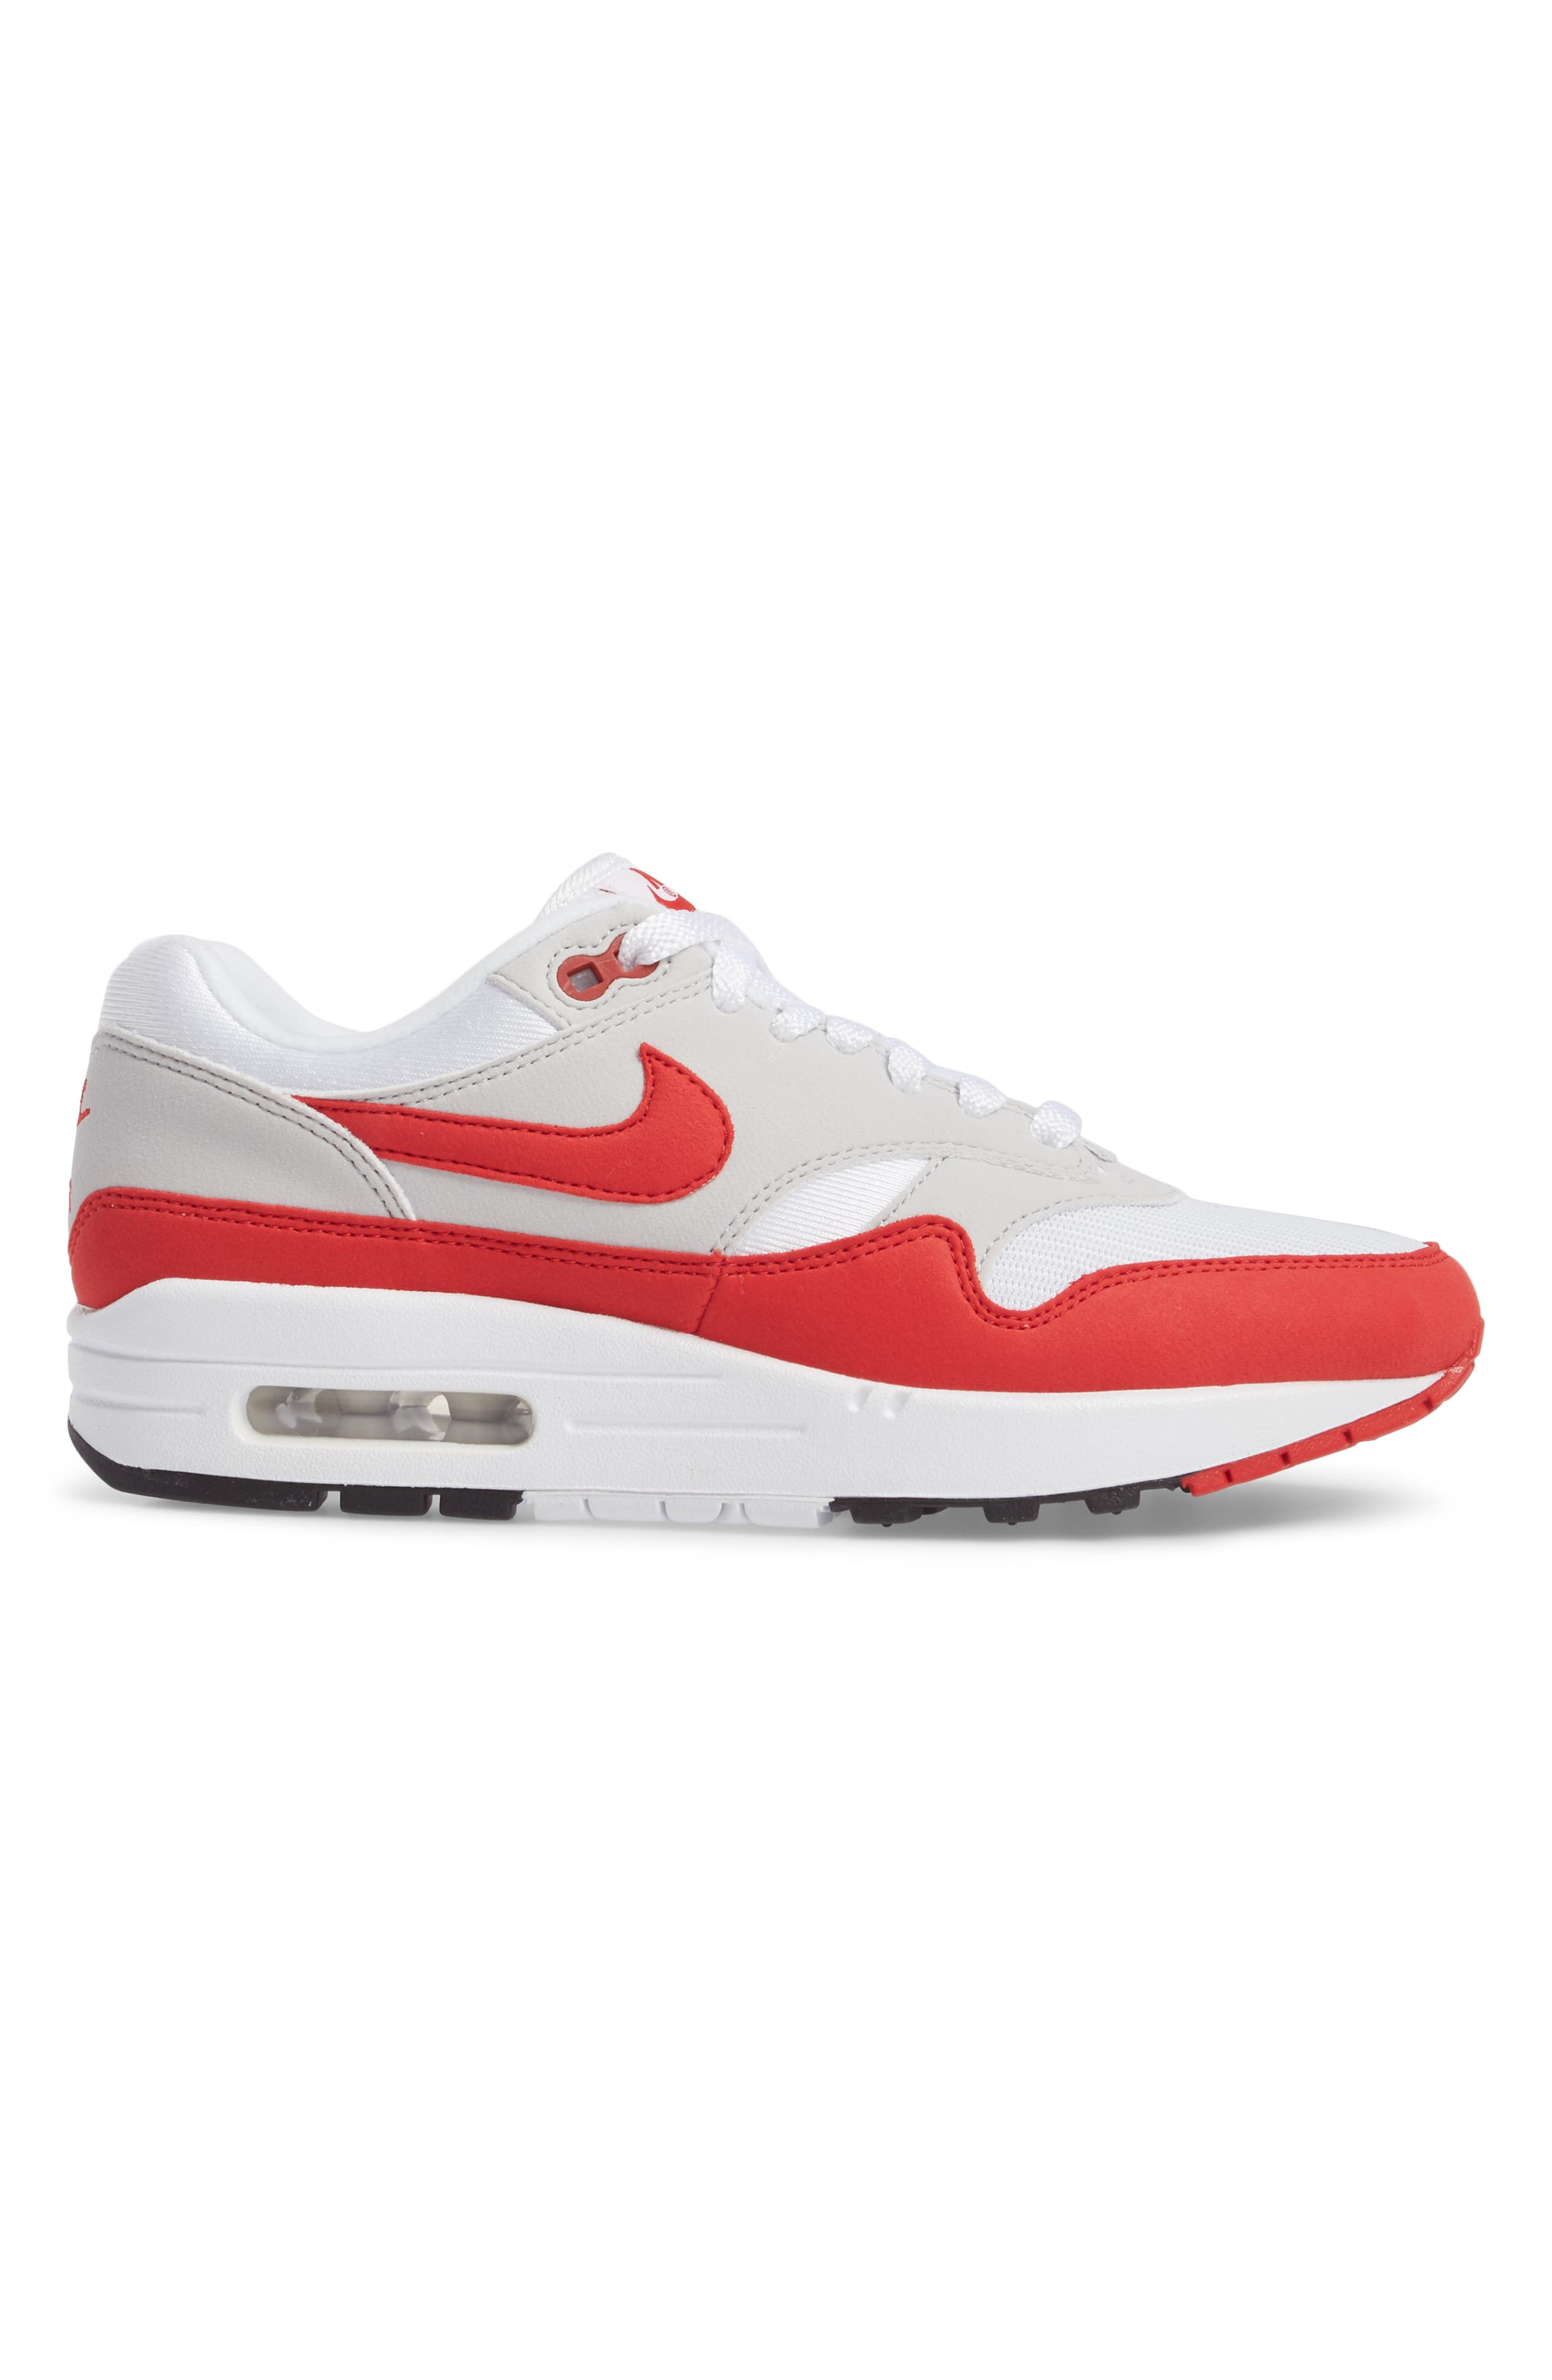 Air Max 1 Anniversary Sneaker,                             Alternate thumbnail 3, color,                             WHITE/ RED/ GREY/ BLACK